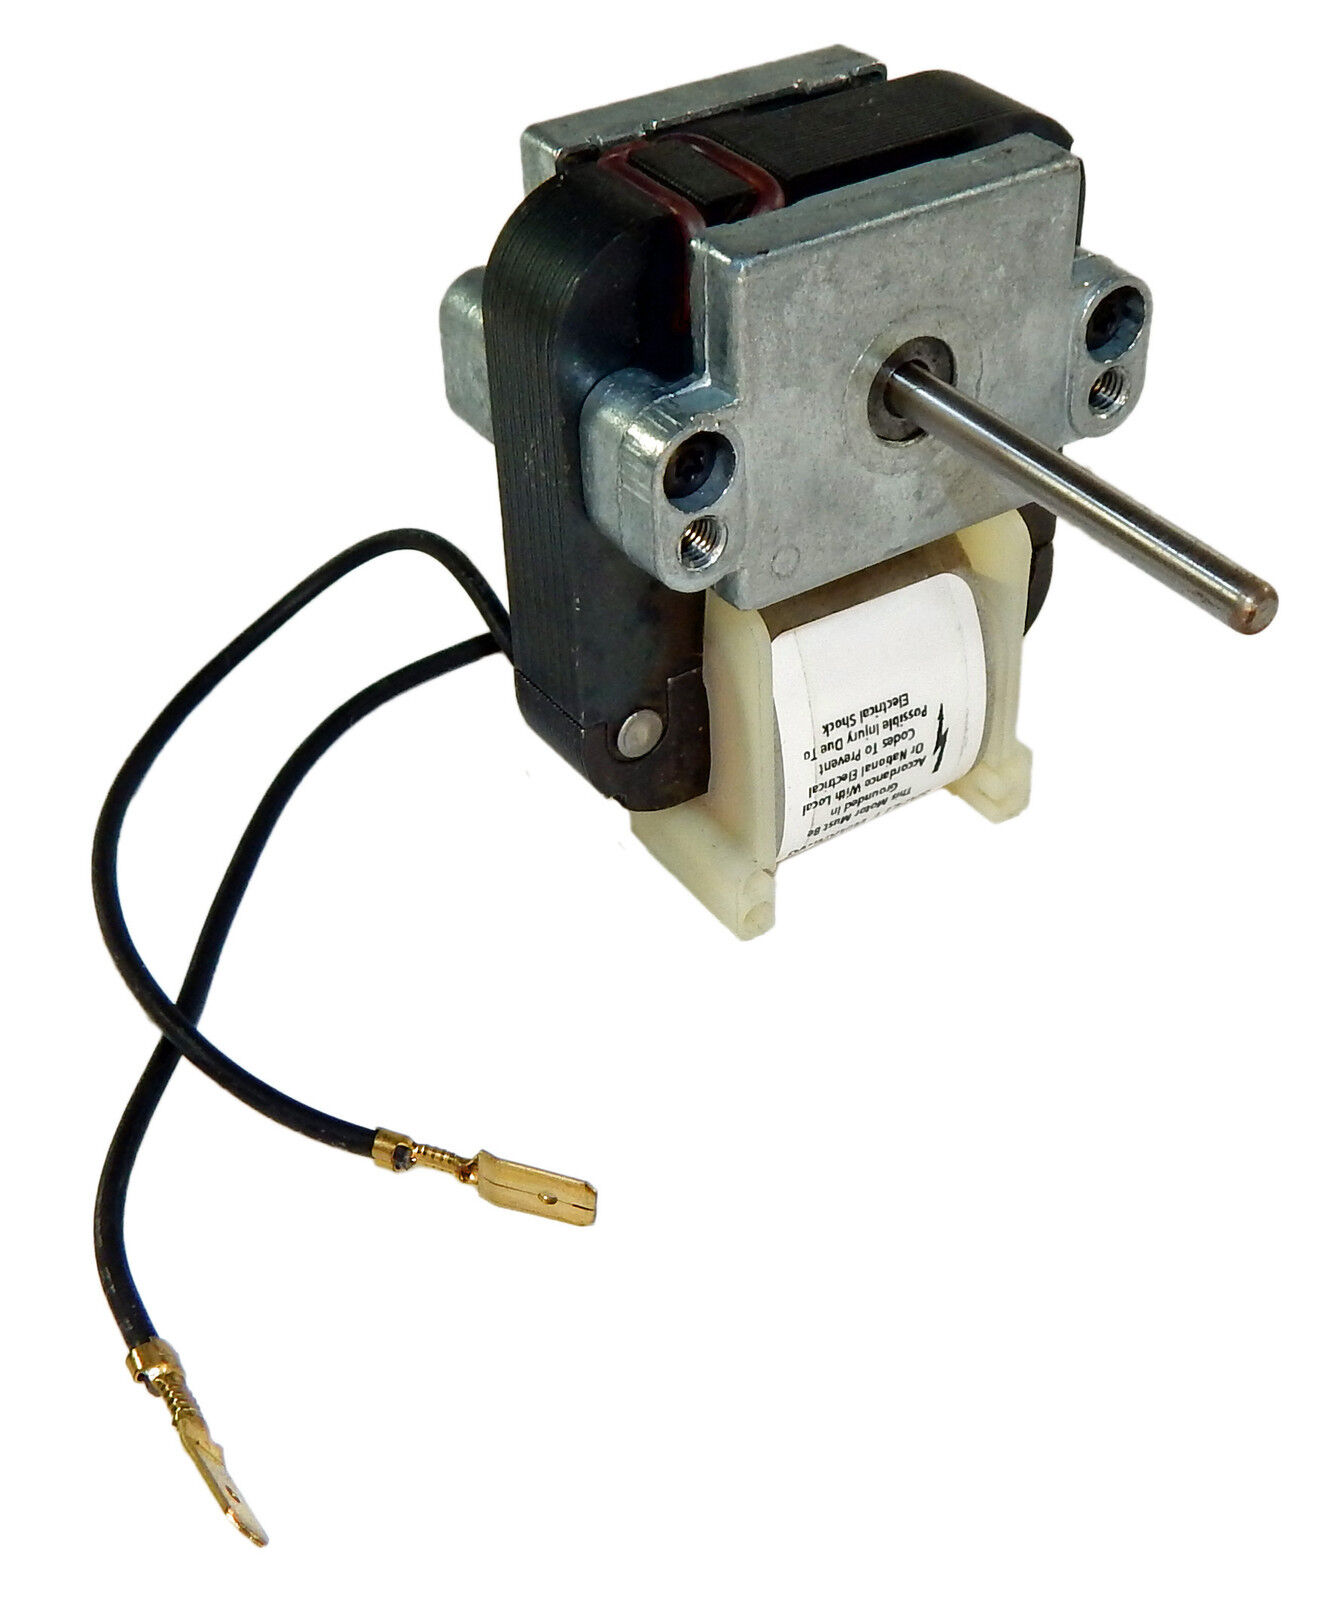 hight resolution of fasco c frame refrigeration fan motor 74 amps 1100 rpm 120v k114